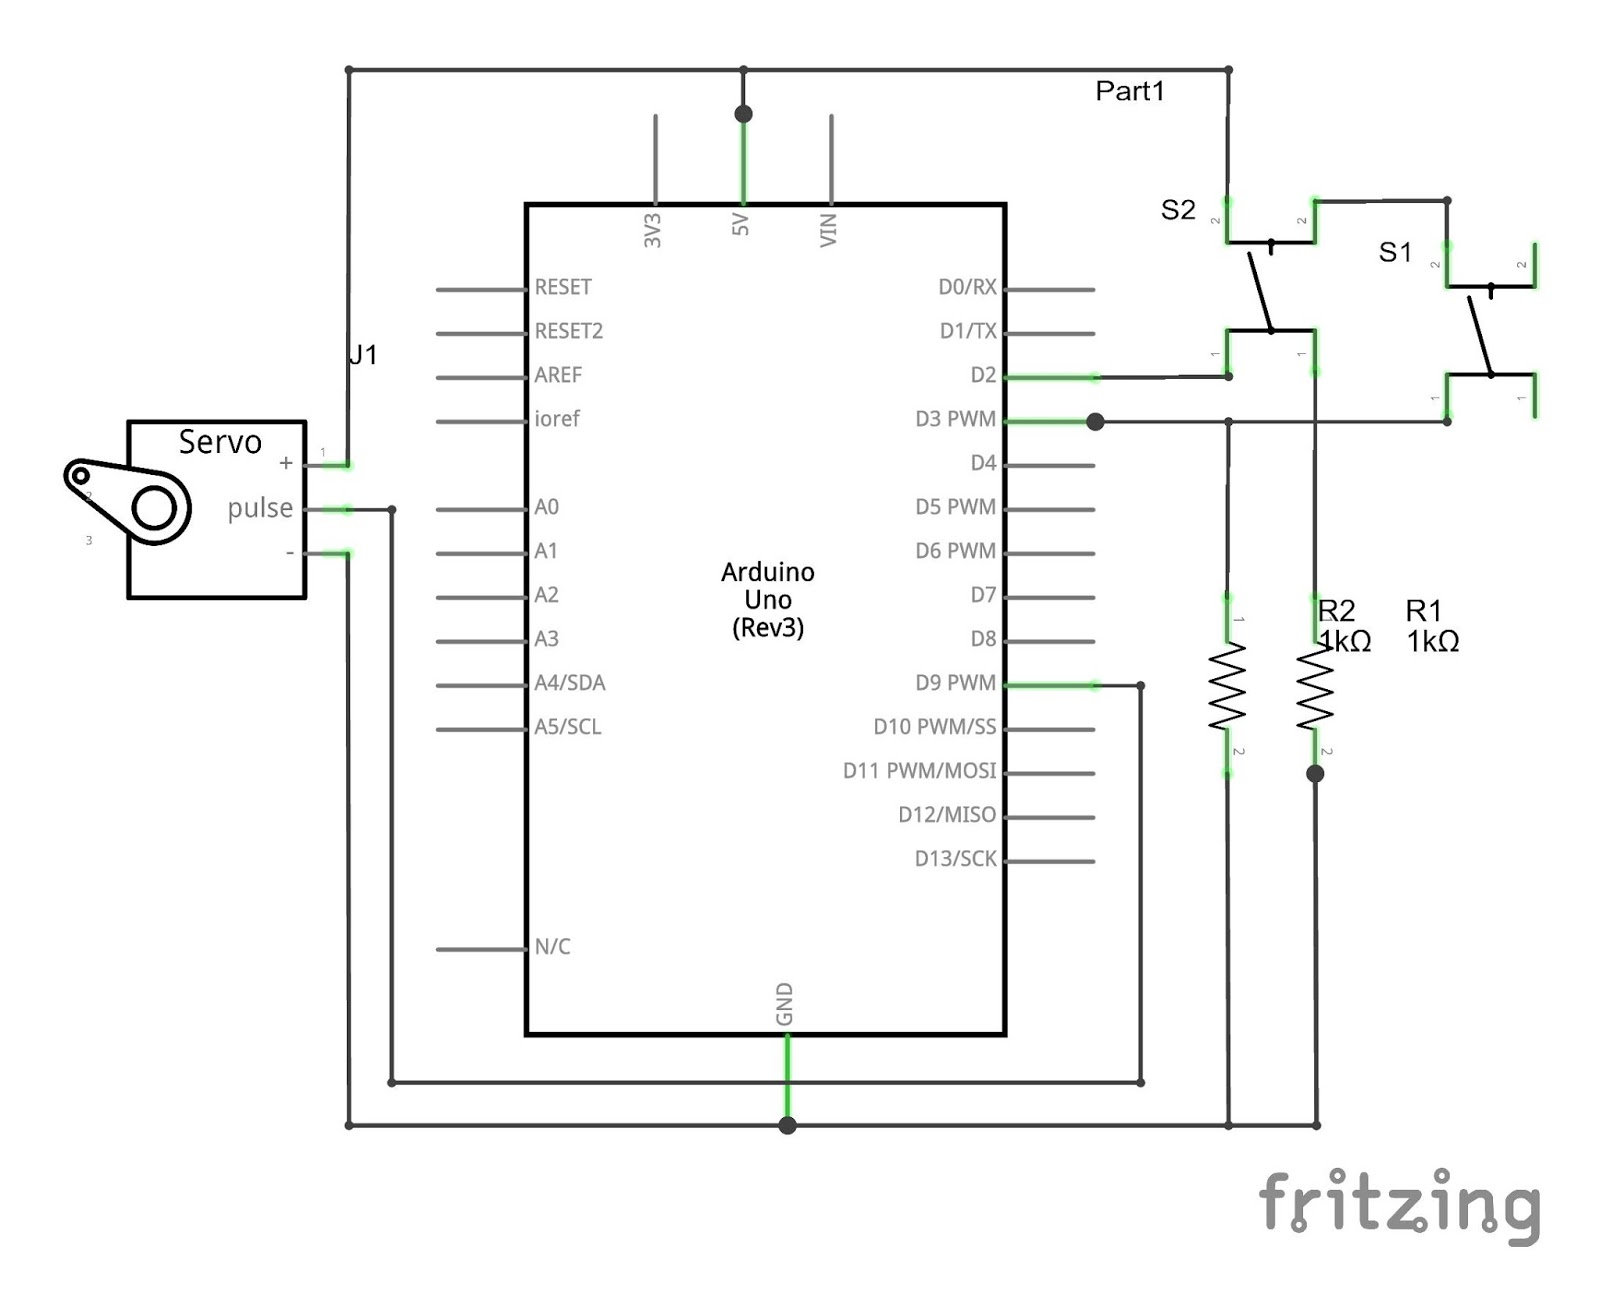 servo motor driver circuit diagram images ideas besides motor on wiring diagram innovation and schematics